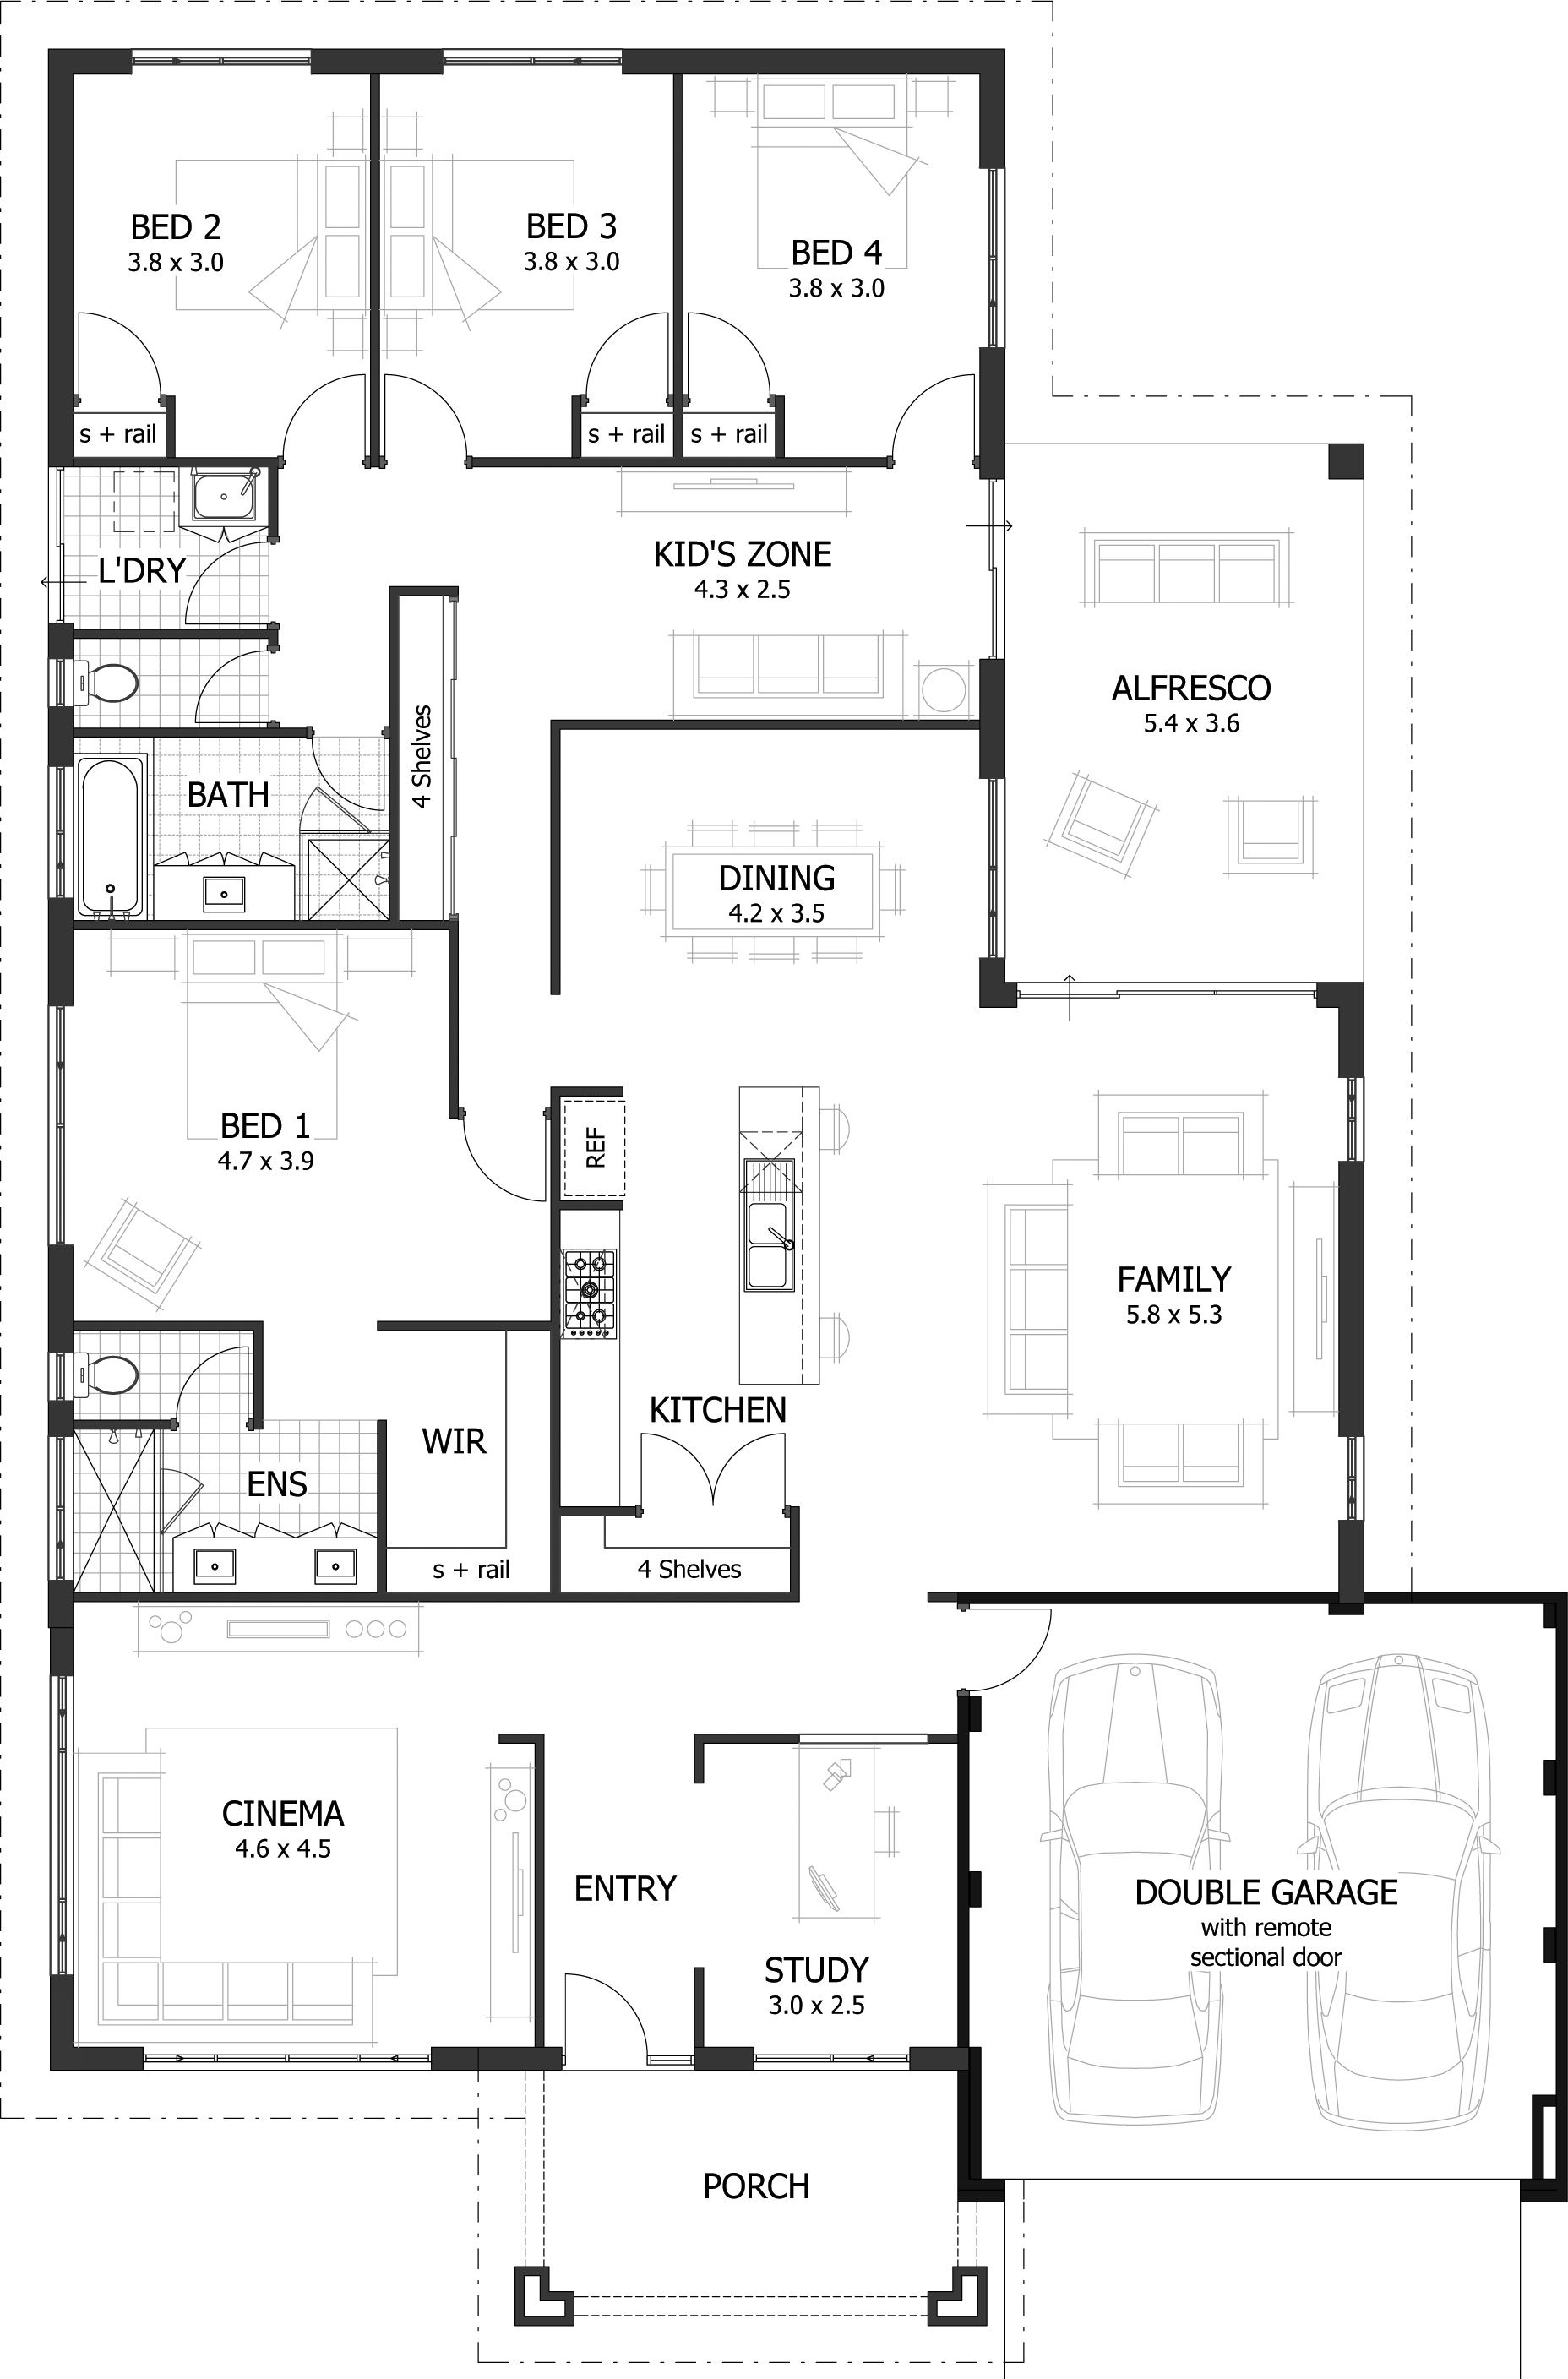 4 Bedroom House Plans & Home Designs | 4 bedroom house ...